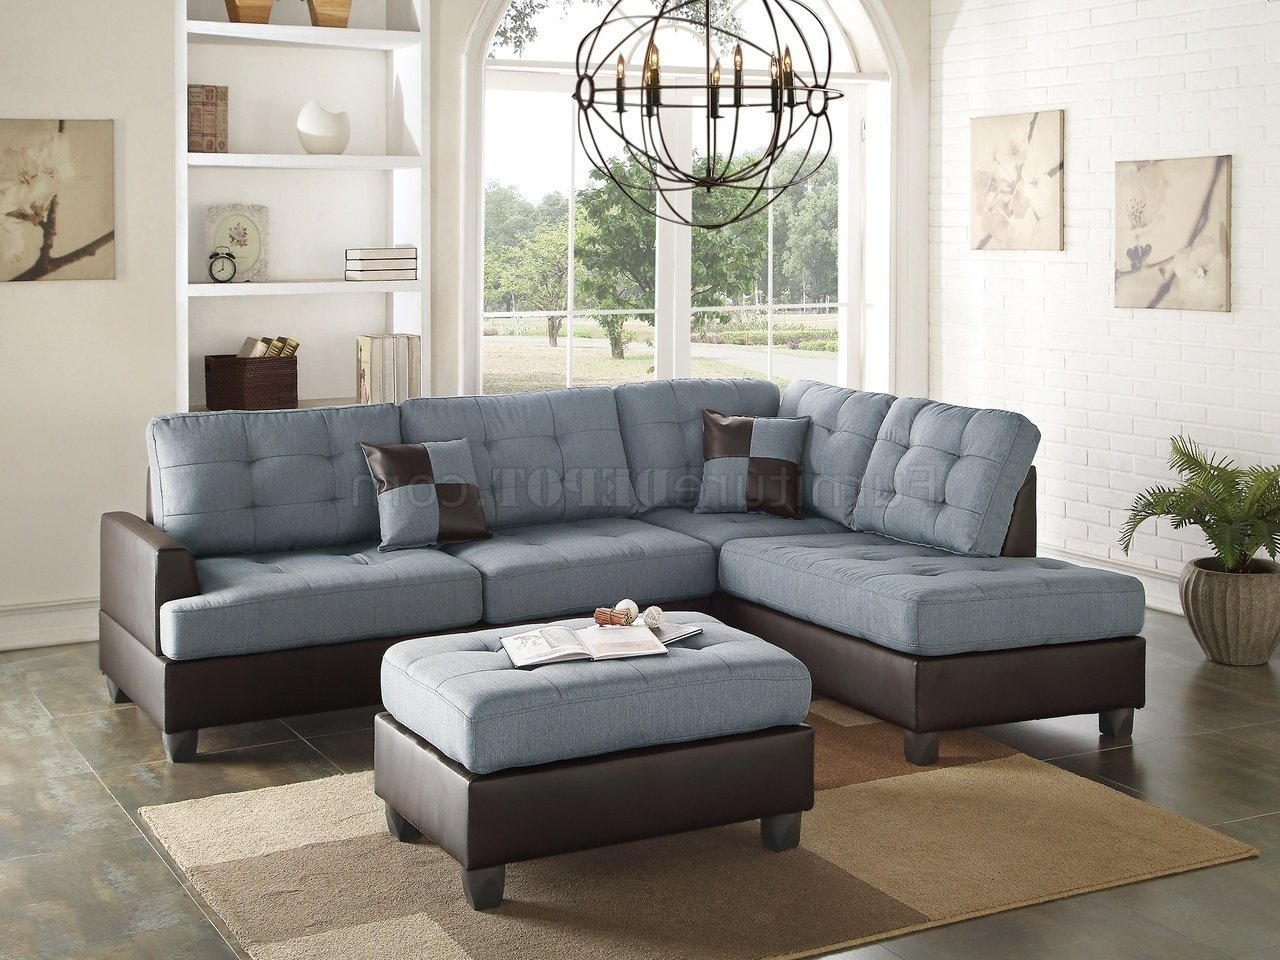 Sectional Sofas In Gray Regarding Preferred F6858 Sectional Sofa 3pc In Grey Fabricboss (View 2 of 20)